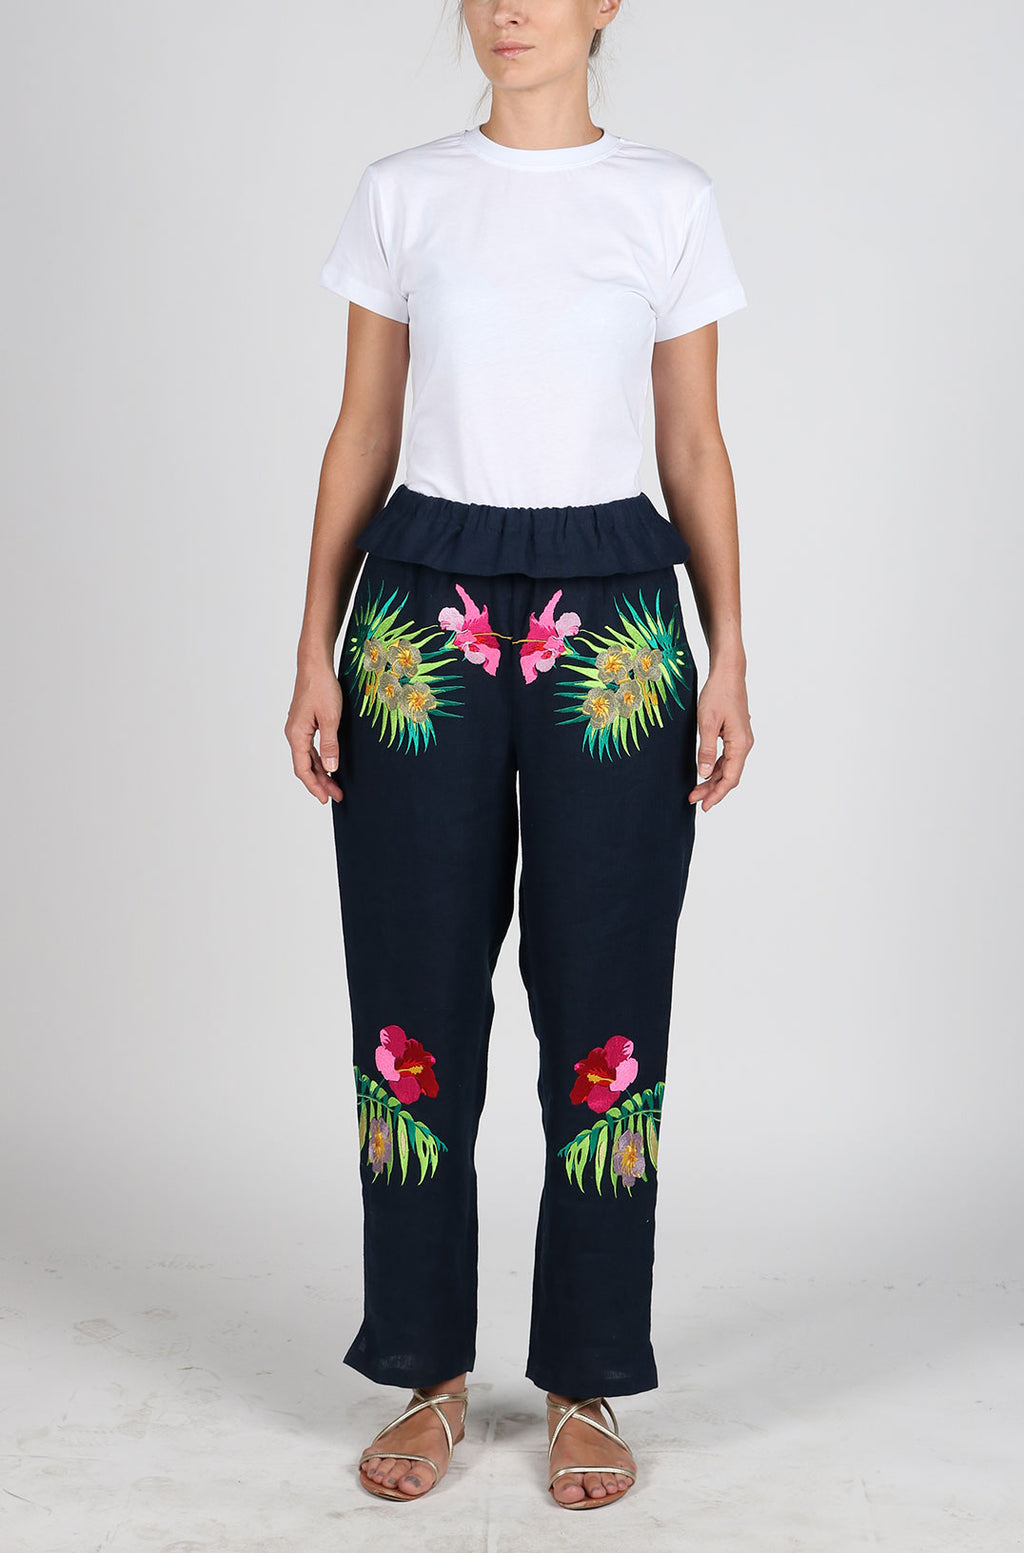 Fanm Mon OMERA Black Linen Pants Floral Leaves Embroidery Vyshyvanka